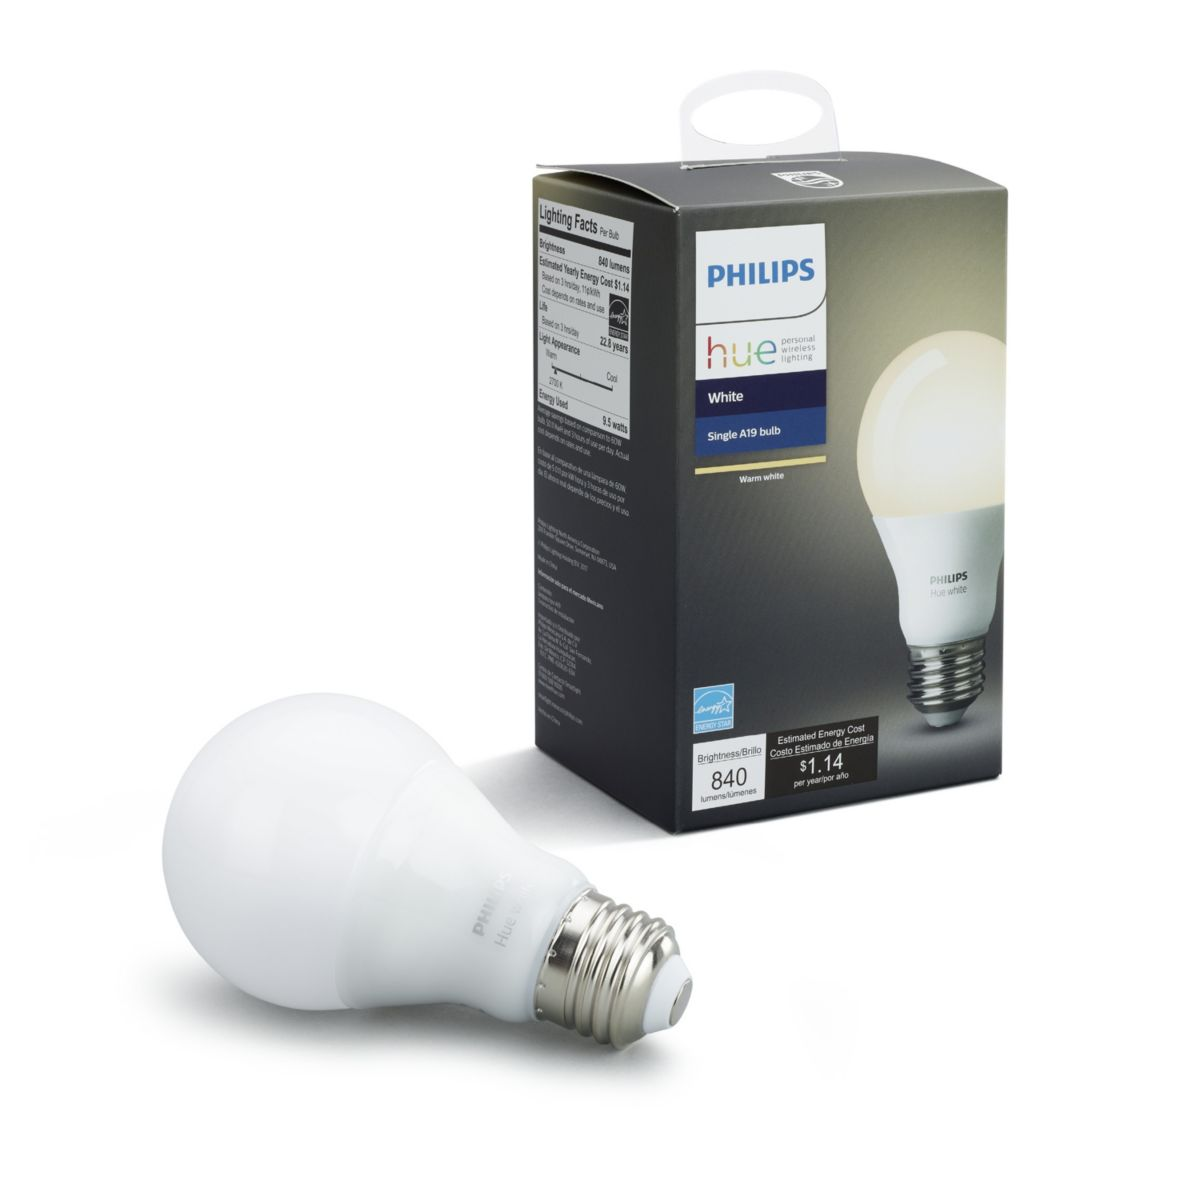 Hue products - Meethue | Philips Lighting